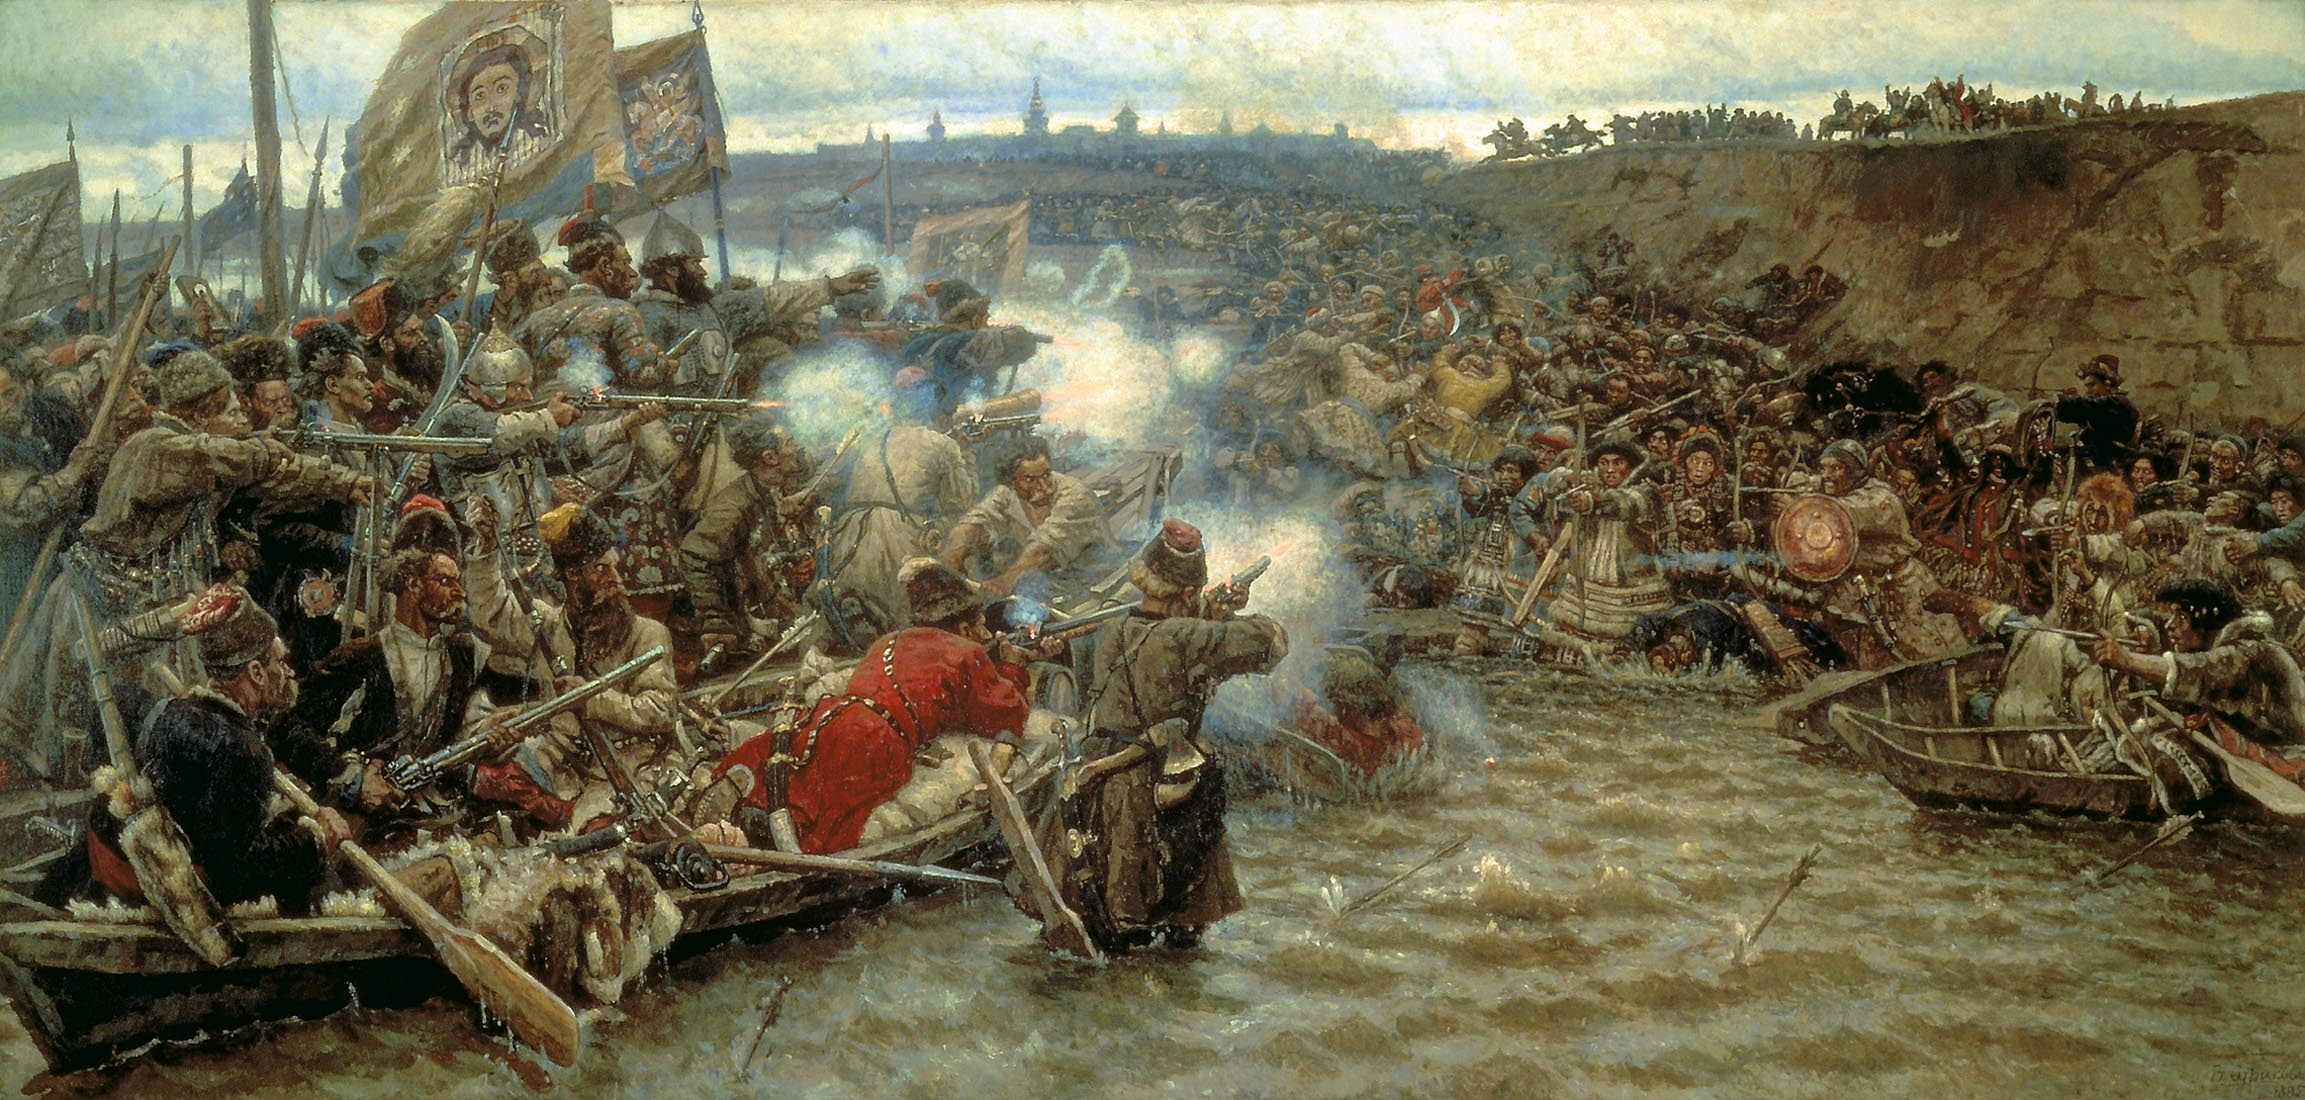 Yermak's Conquest of Siberia , a painting by Vasily Surikov: military.wikia.com/wiki/Russian_conquest_of_Siberia